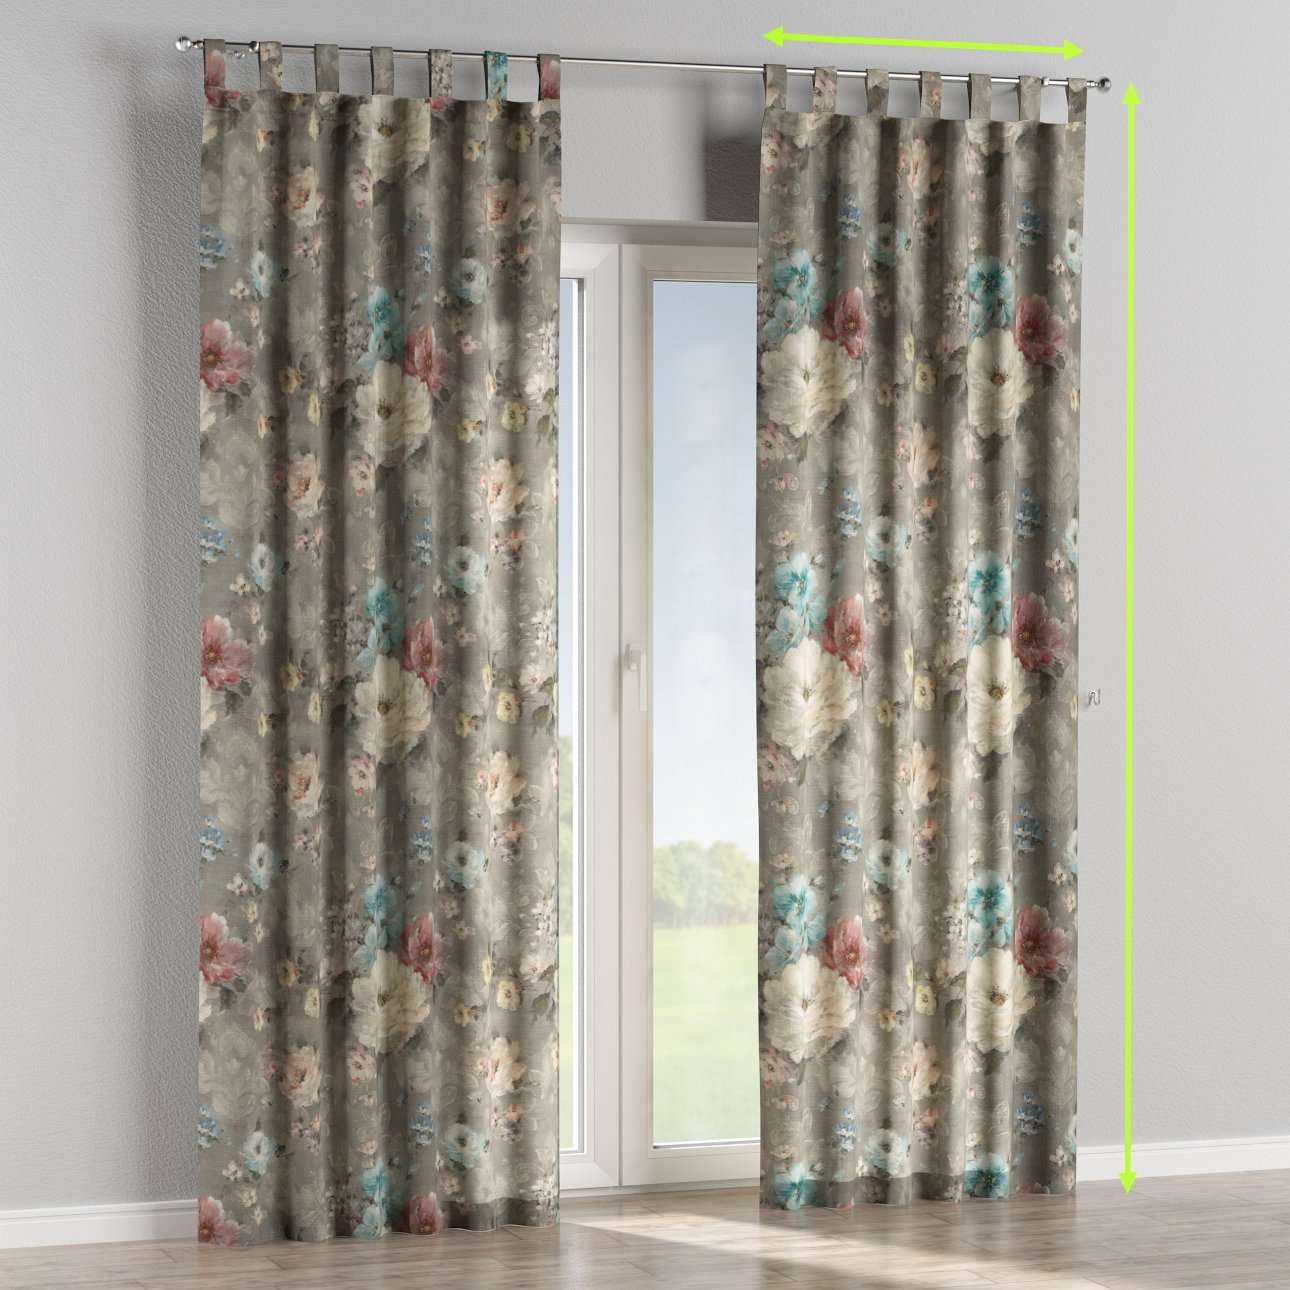 Tab top curtains in collection Monet, fabric: 137-81